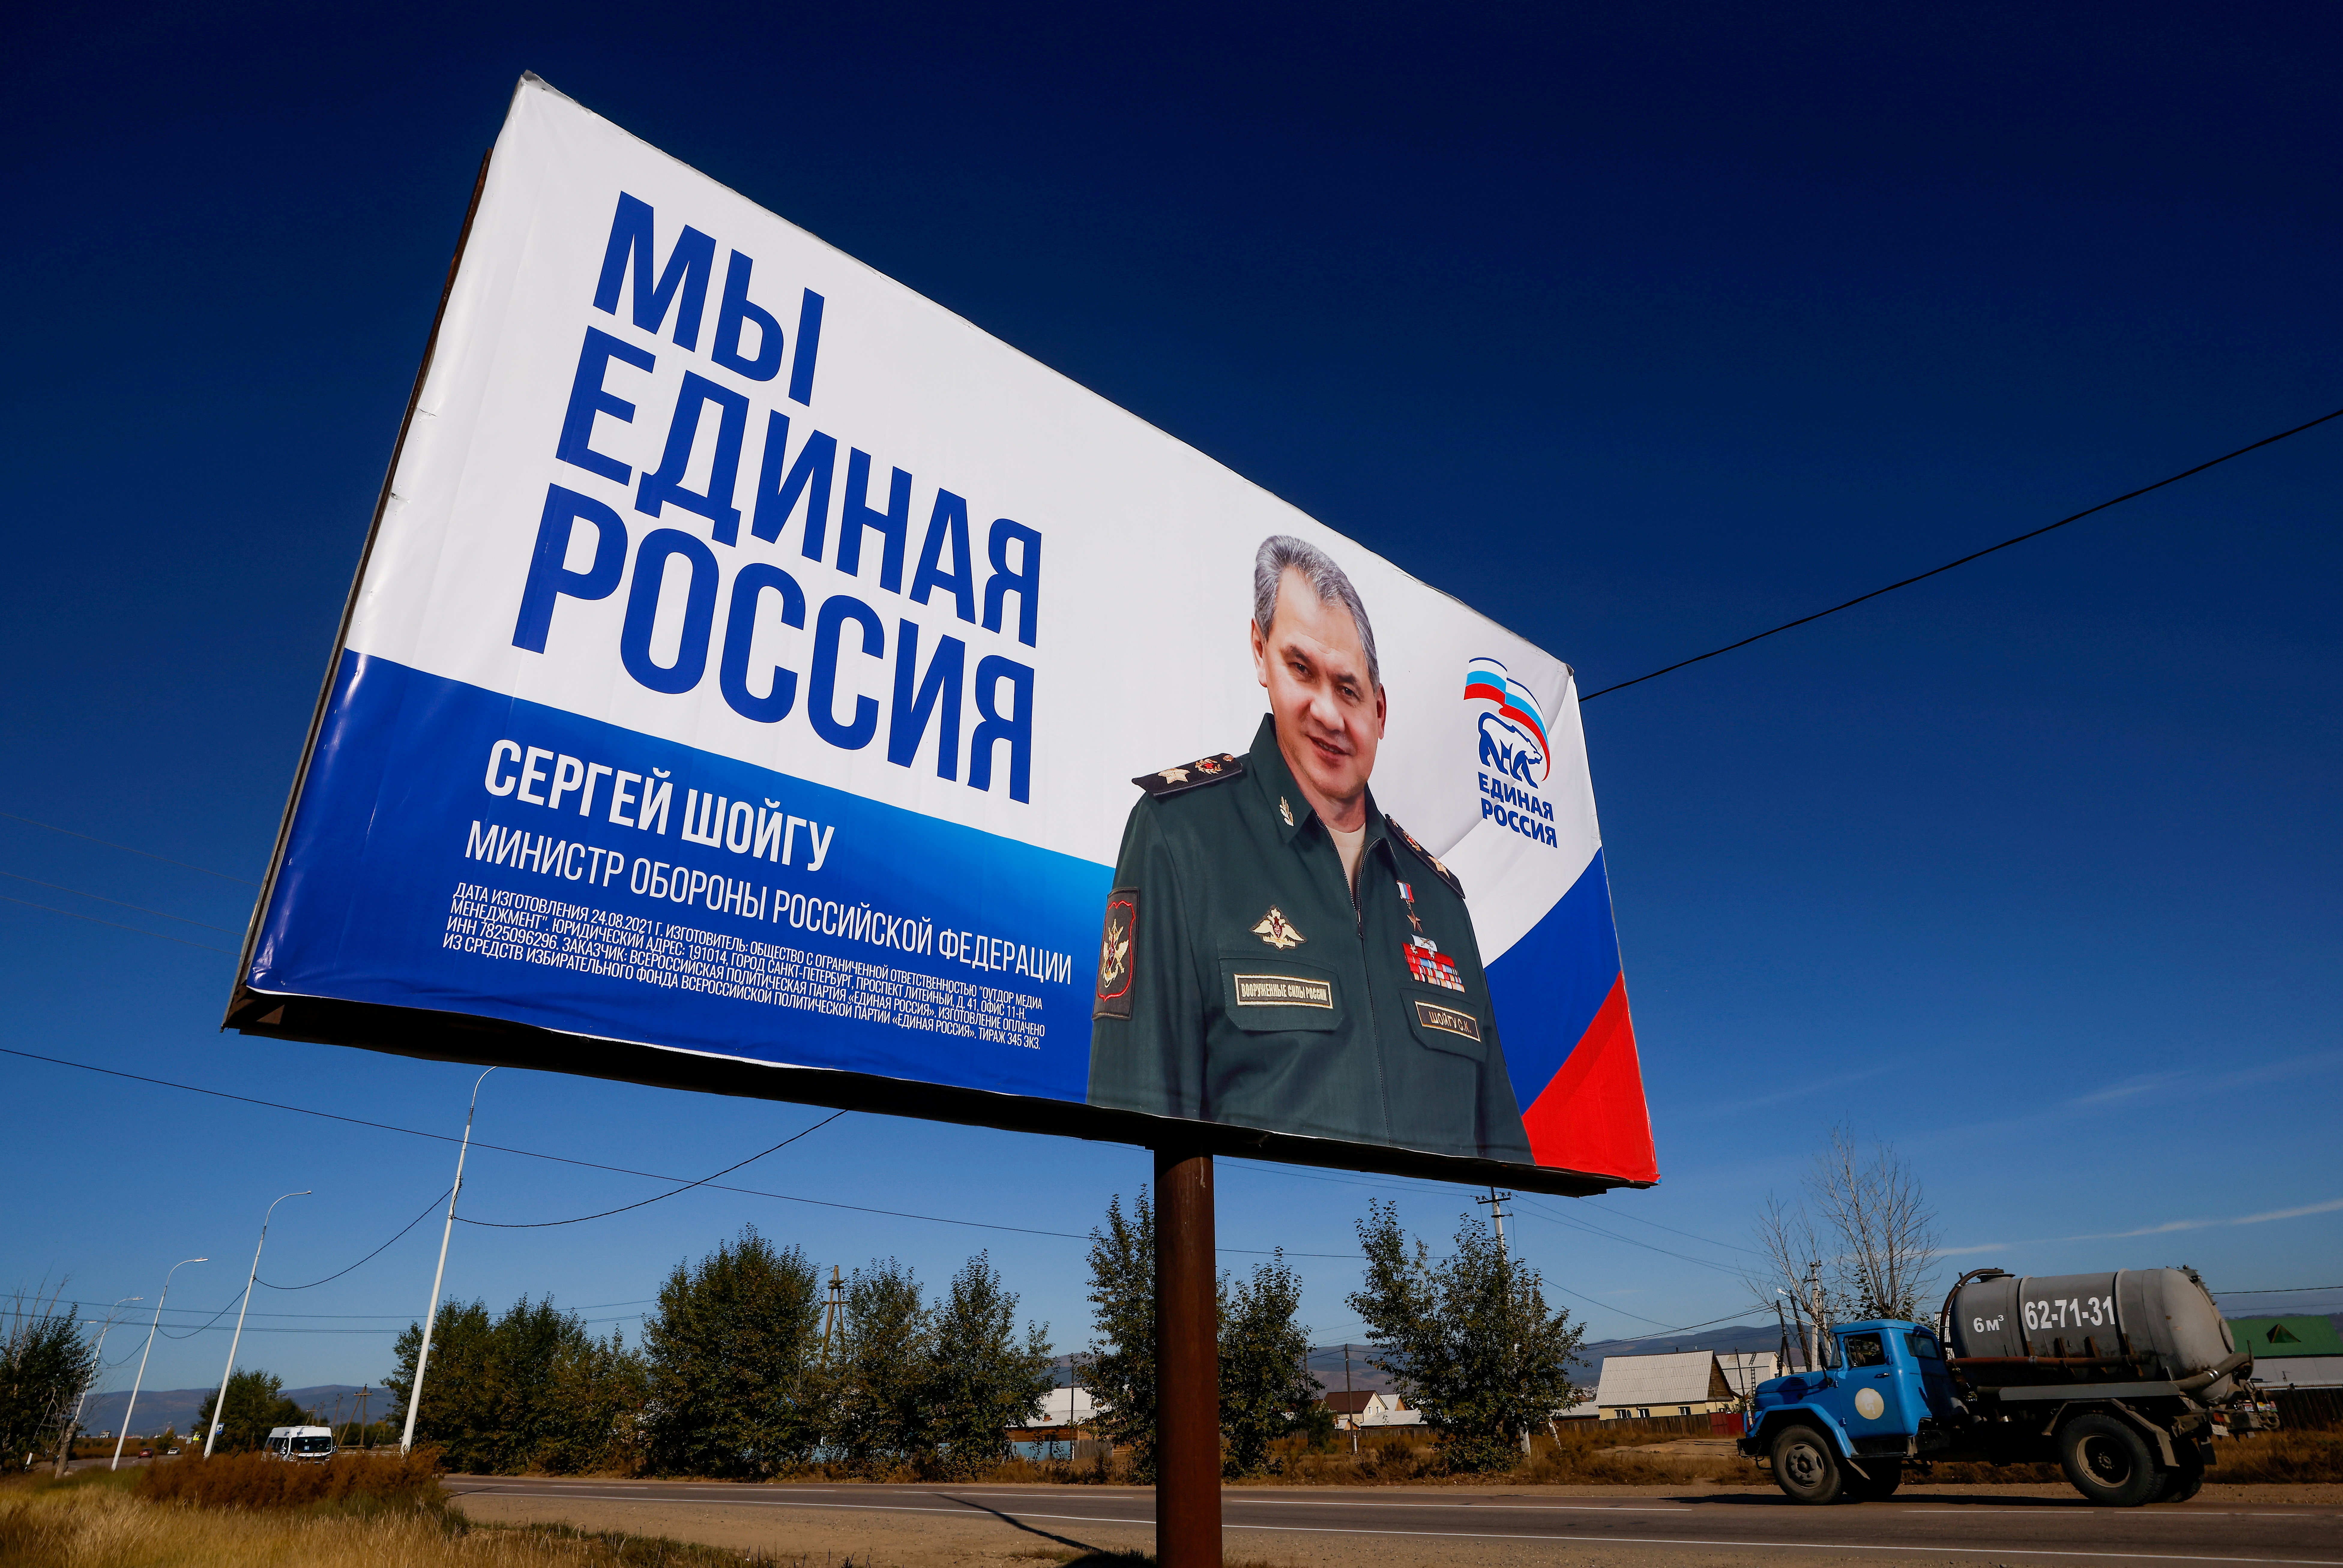 A truck drives past a campaign poster of the United Russia political party ahead of the Russian parliamentary and regional election outside Ulan-Ude, Buryatia republic, Russia September 16, 2021. REUTERS/Maxim Shemetov/File Photo